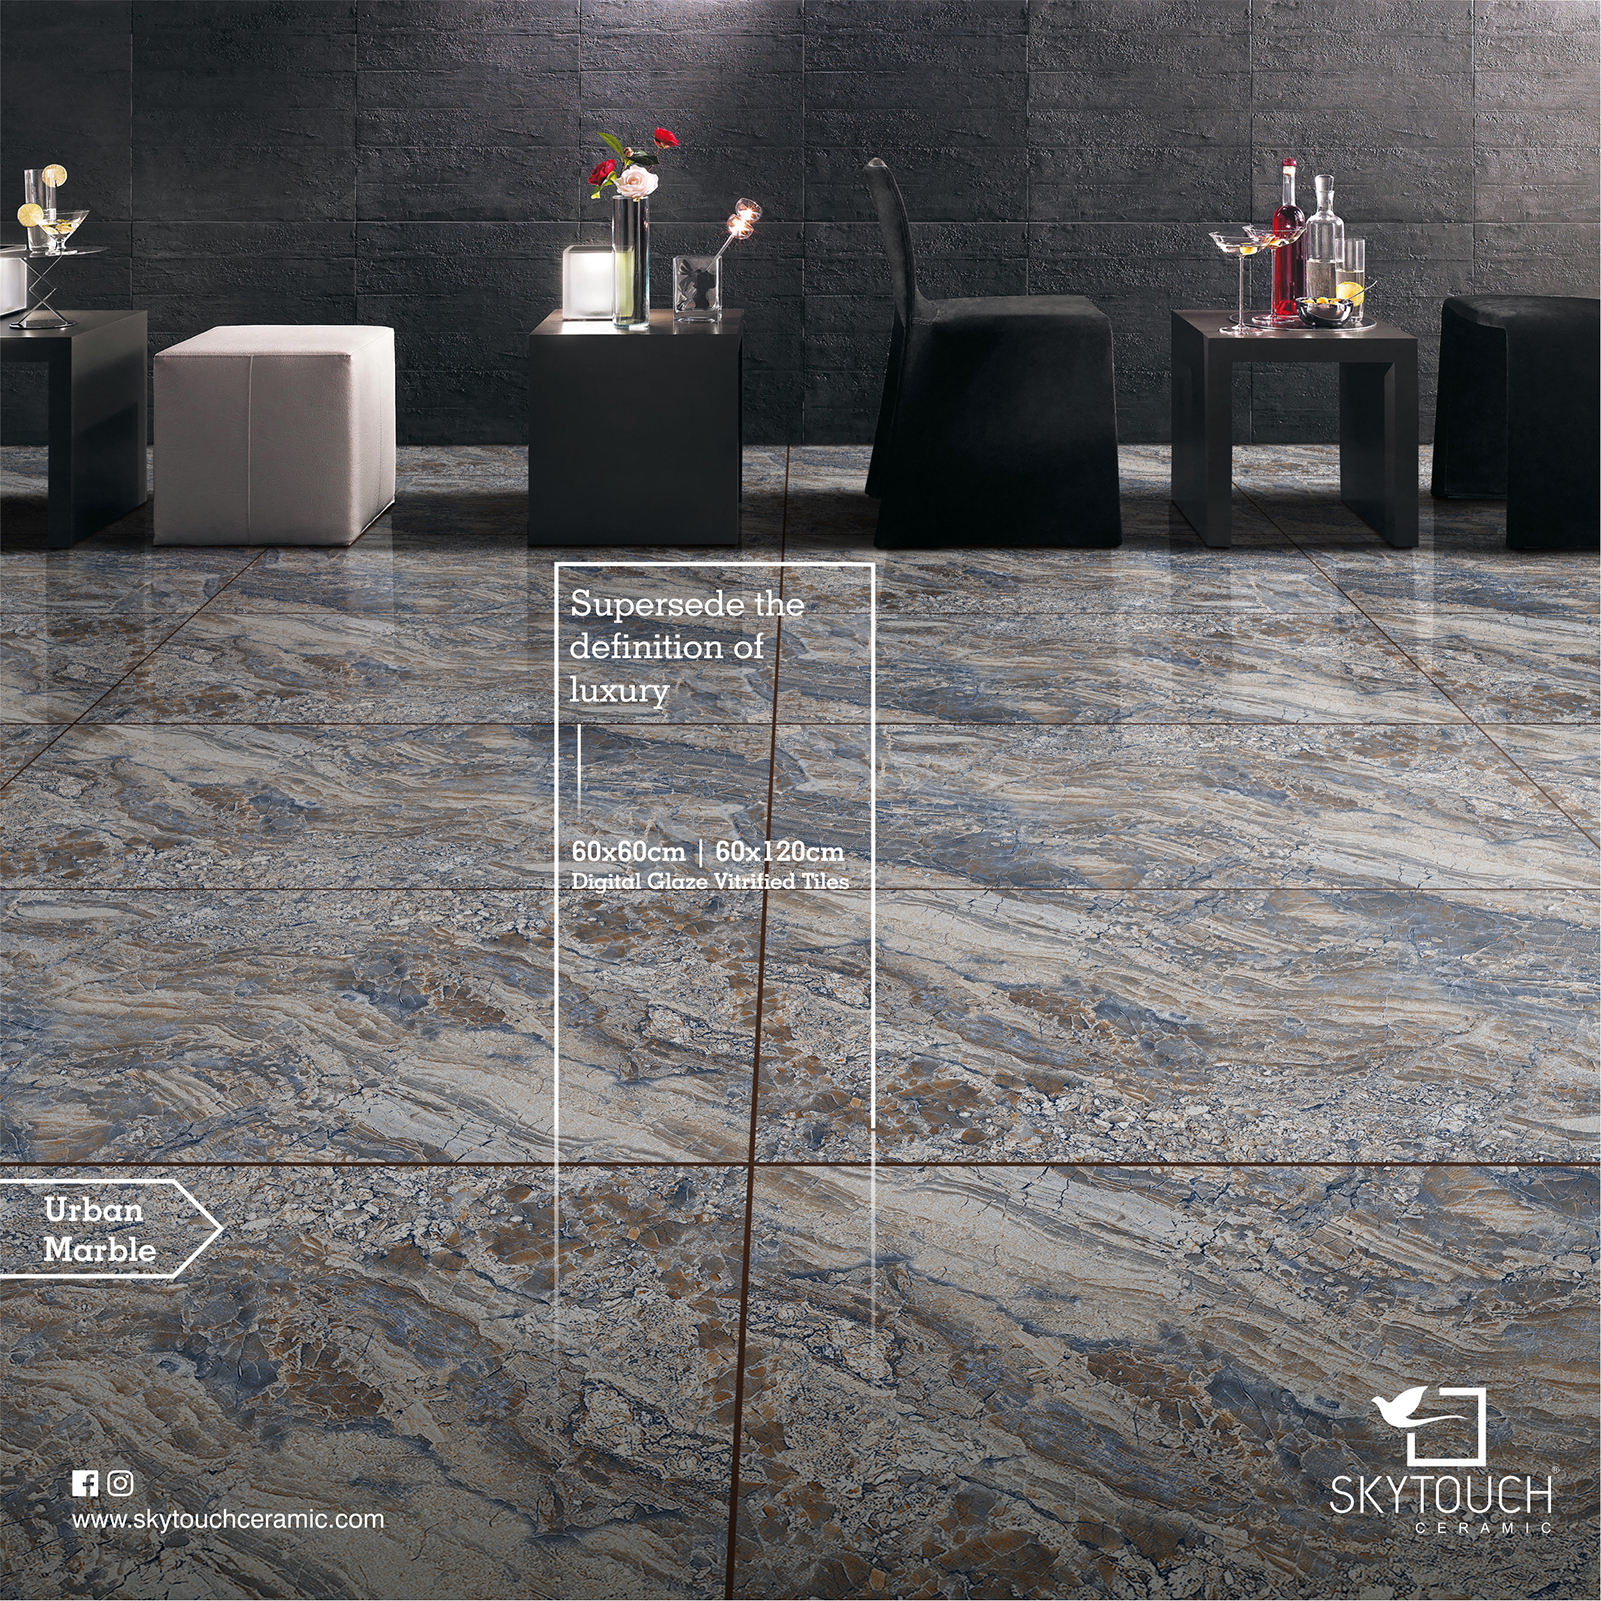 Countertop Porcelain Slabs Full Body Newest Designs Porcelain Tile White India Polished Porcelain Floor Tiles